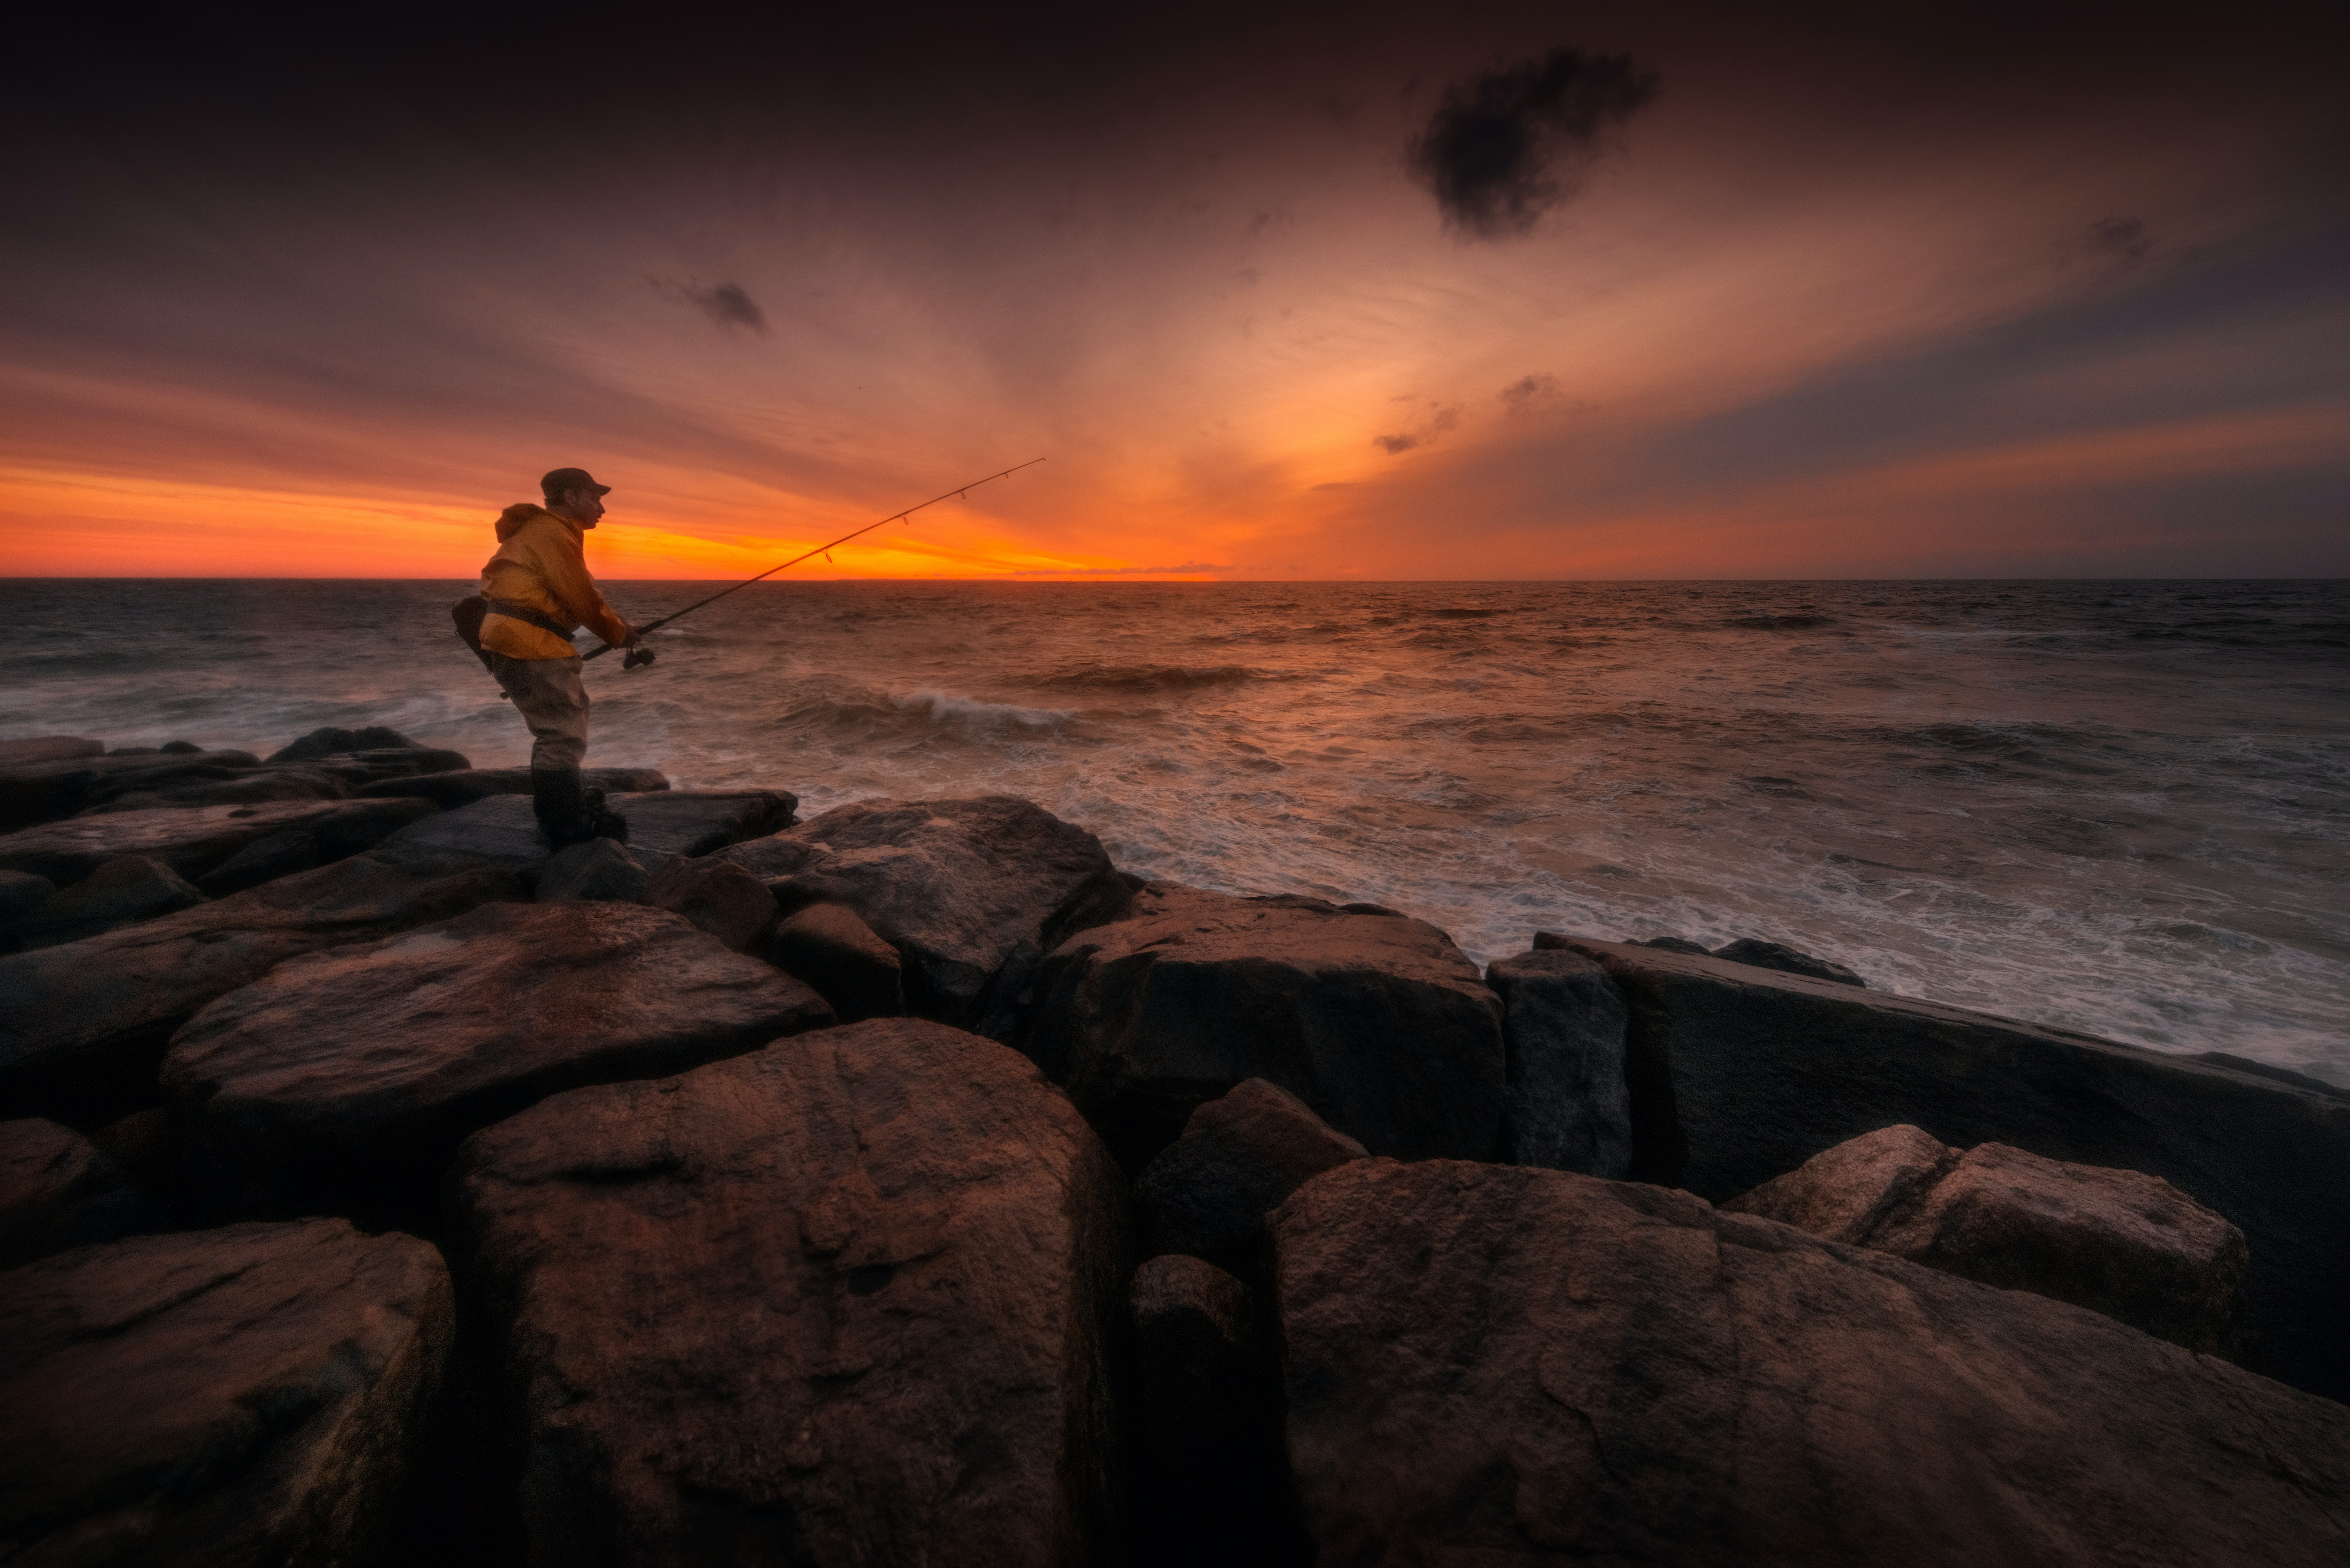 man standing on rock fishing on body of water during sunset